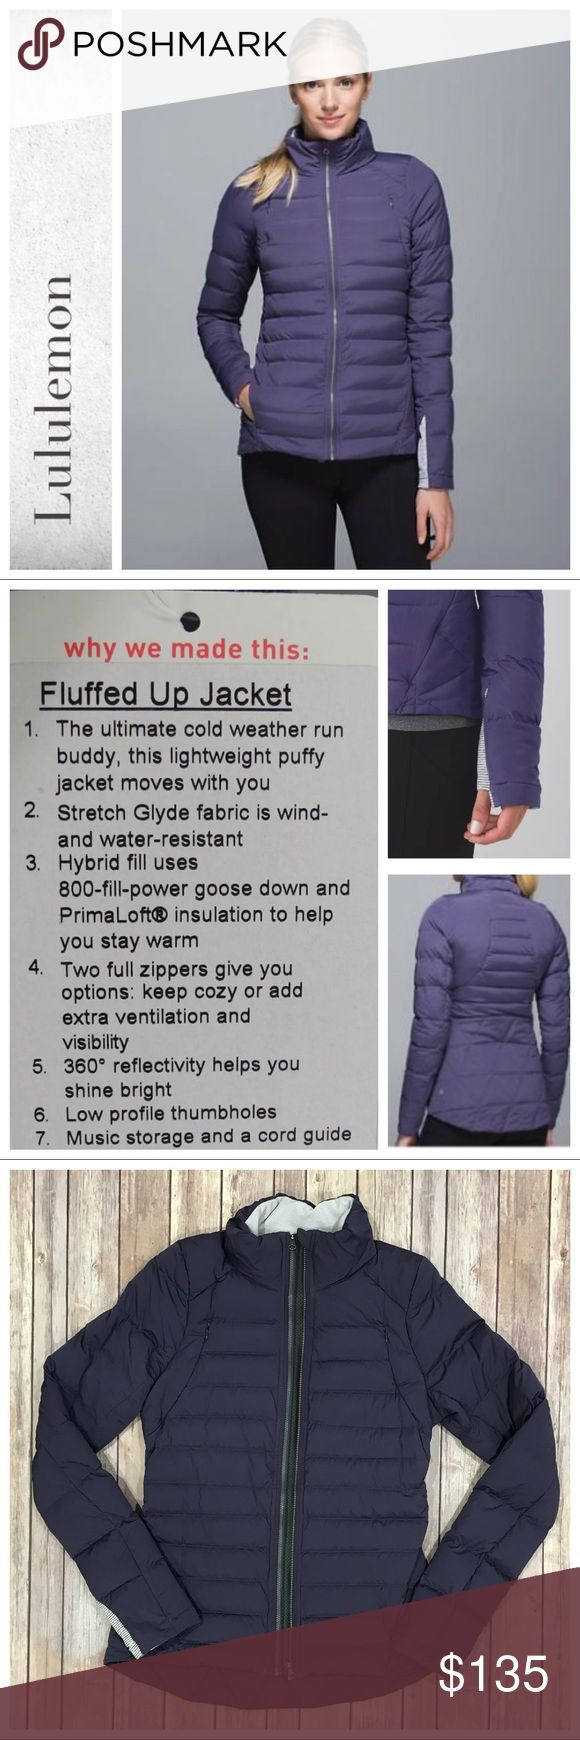 """Lululemon Fluffed Up Jacket Nightfall - stock photos best depiction of color. Excellent condition. Riptag removed. Tag pic shows Jacket details only. Measures 19"""" across pit to pit zipped without showing reflective strip add approx 1"""" if zipped to show reflective strip. No trades. Price firm. lululemon athletica Jackets & Coats"""